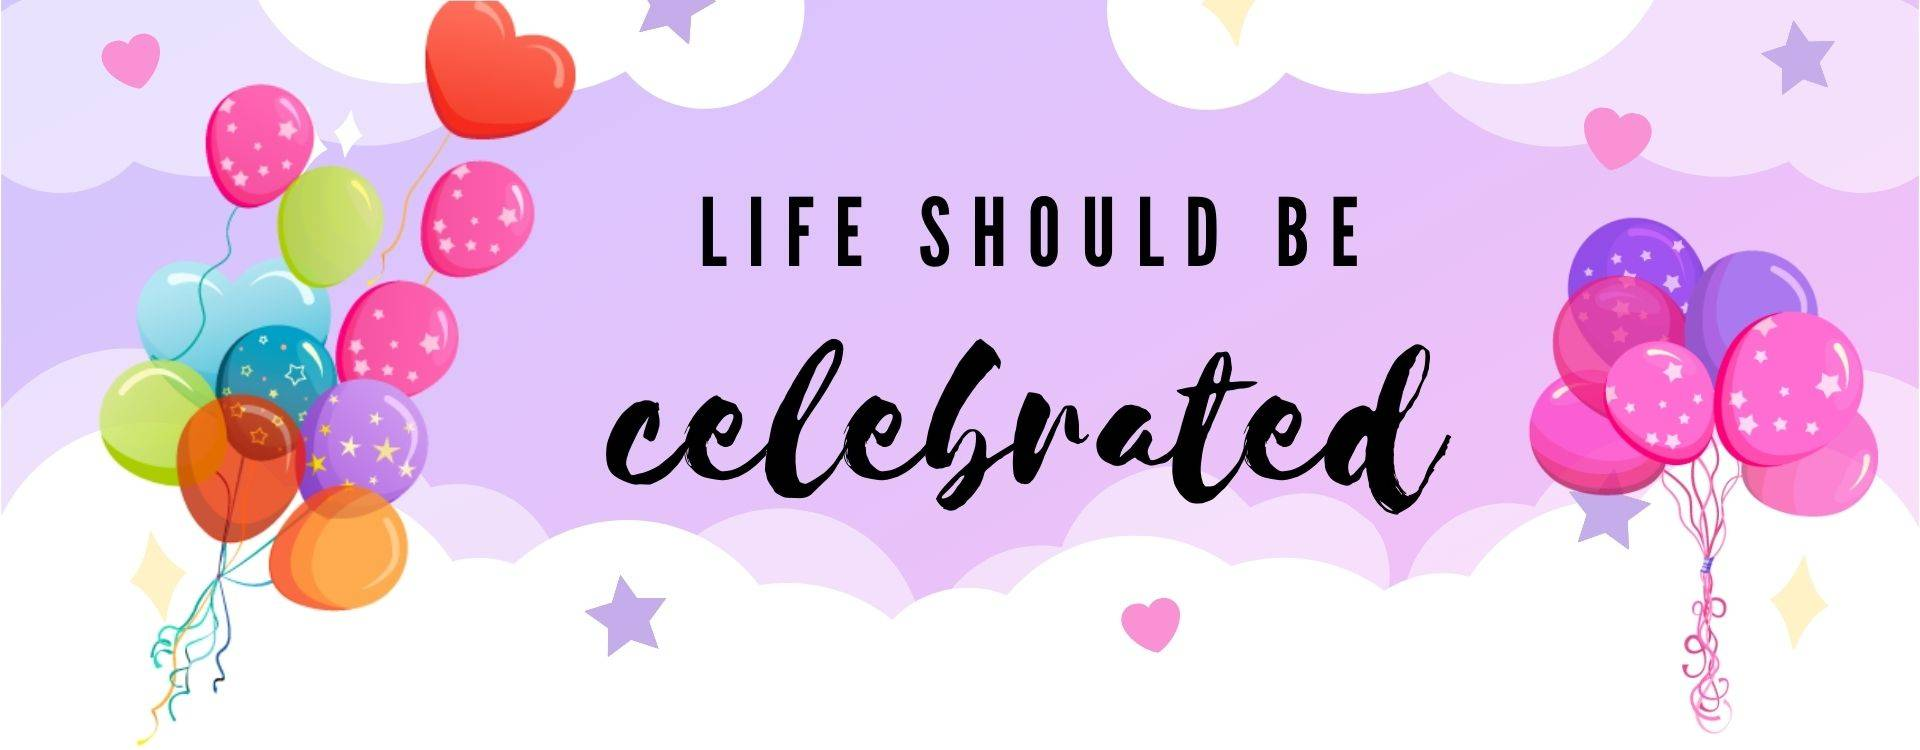 Life should be celebrated